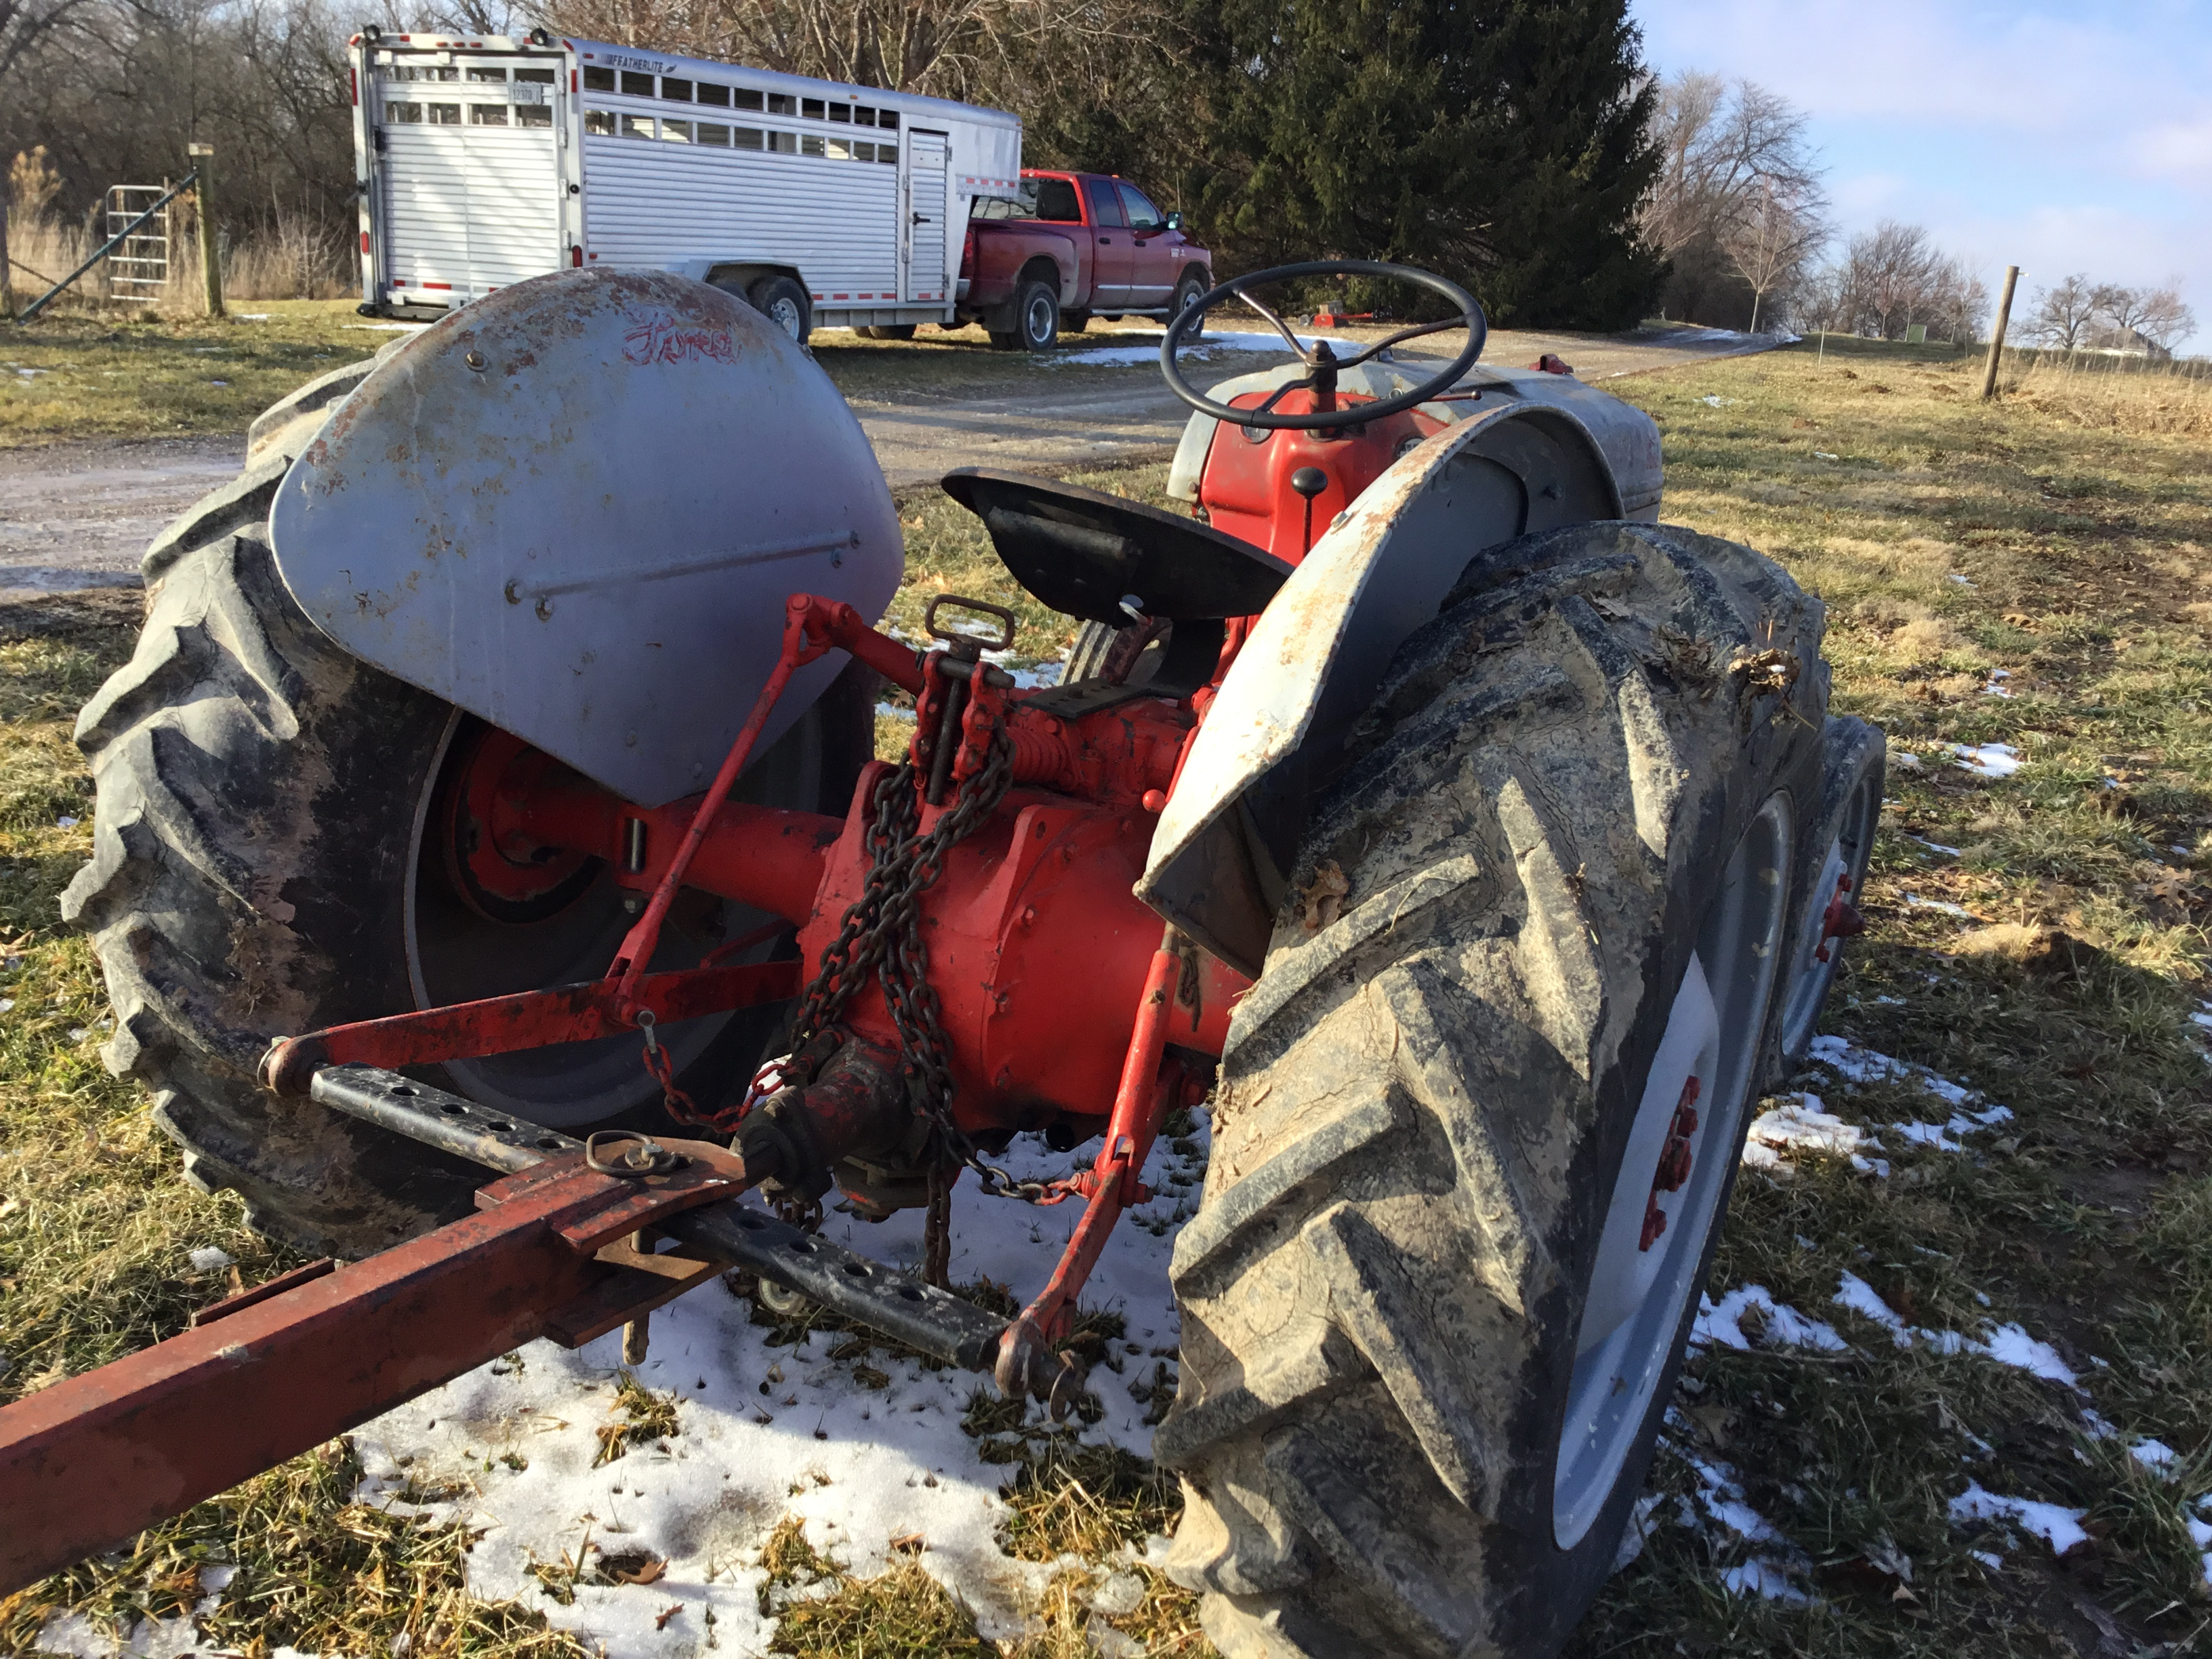 1951 8N Ford Tractor - Image 4 of 6